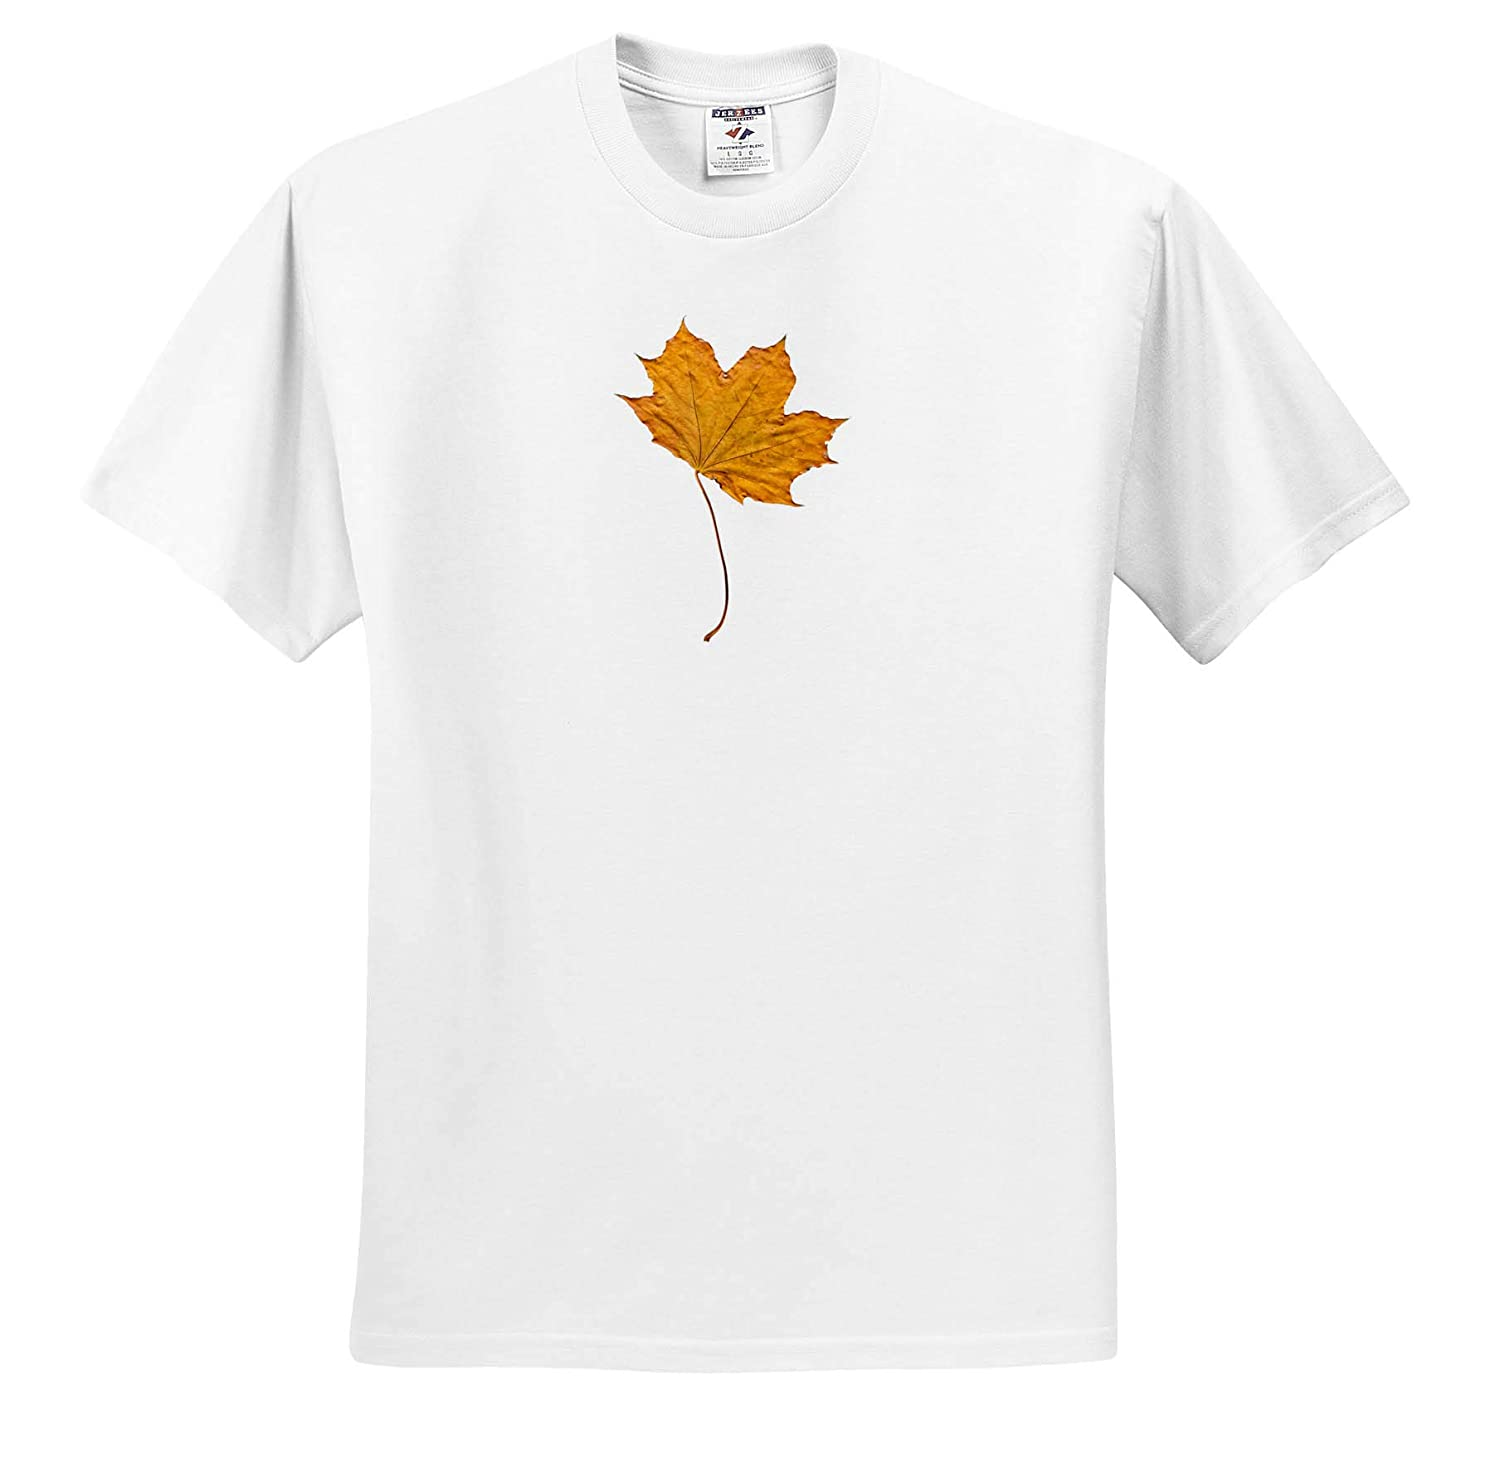 3dRose Lens Art by Florene T-Shirts Image of One Large Gold Maple Leaf Everything Gold